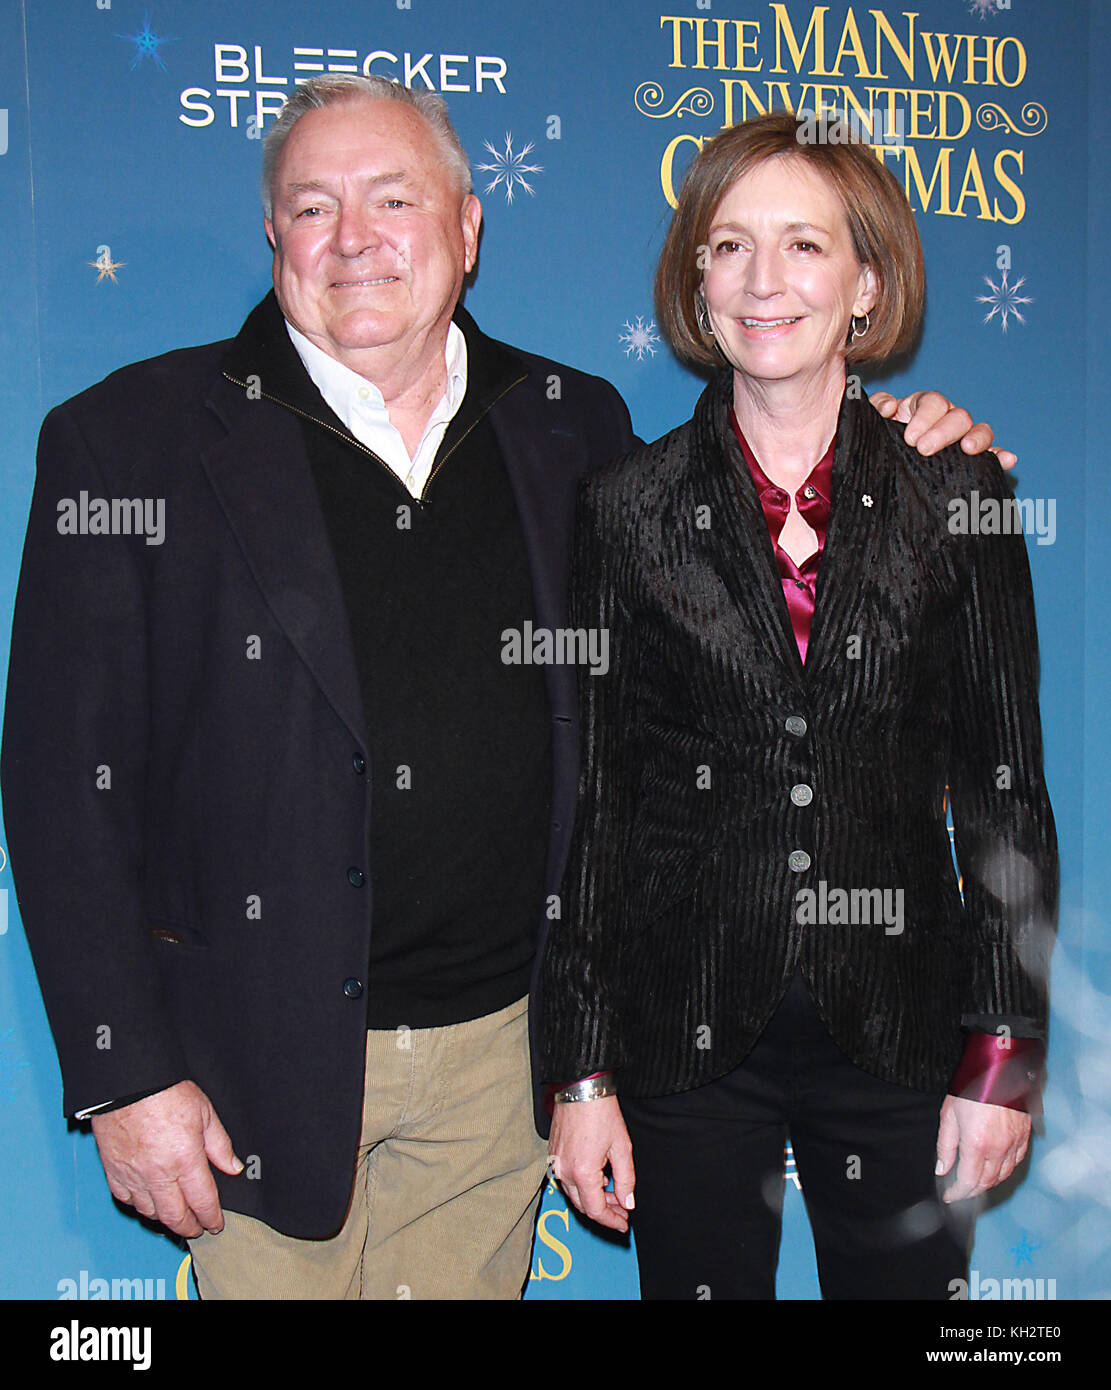 New York, USA. 12th Nov, 2017. 2017Les Standiford, Susan Coyne, attend Bleecker Street present a special screening - Stock Image